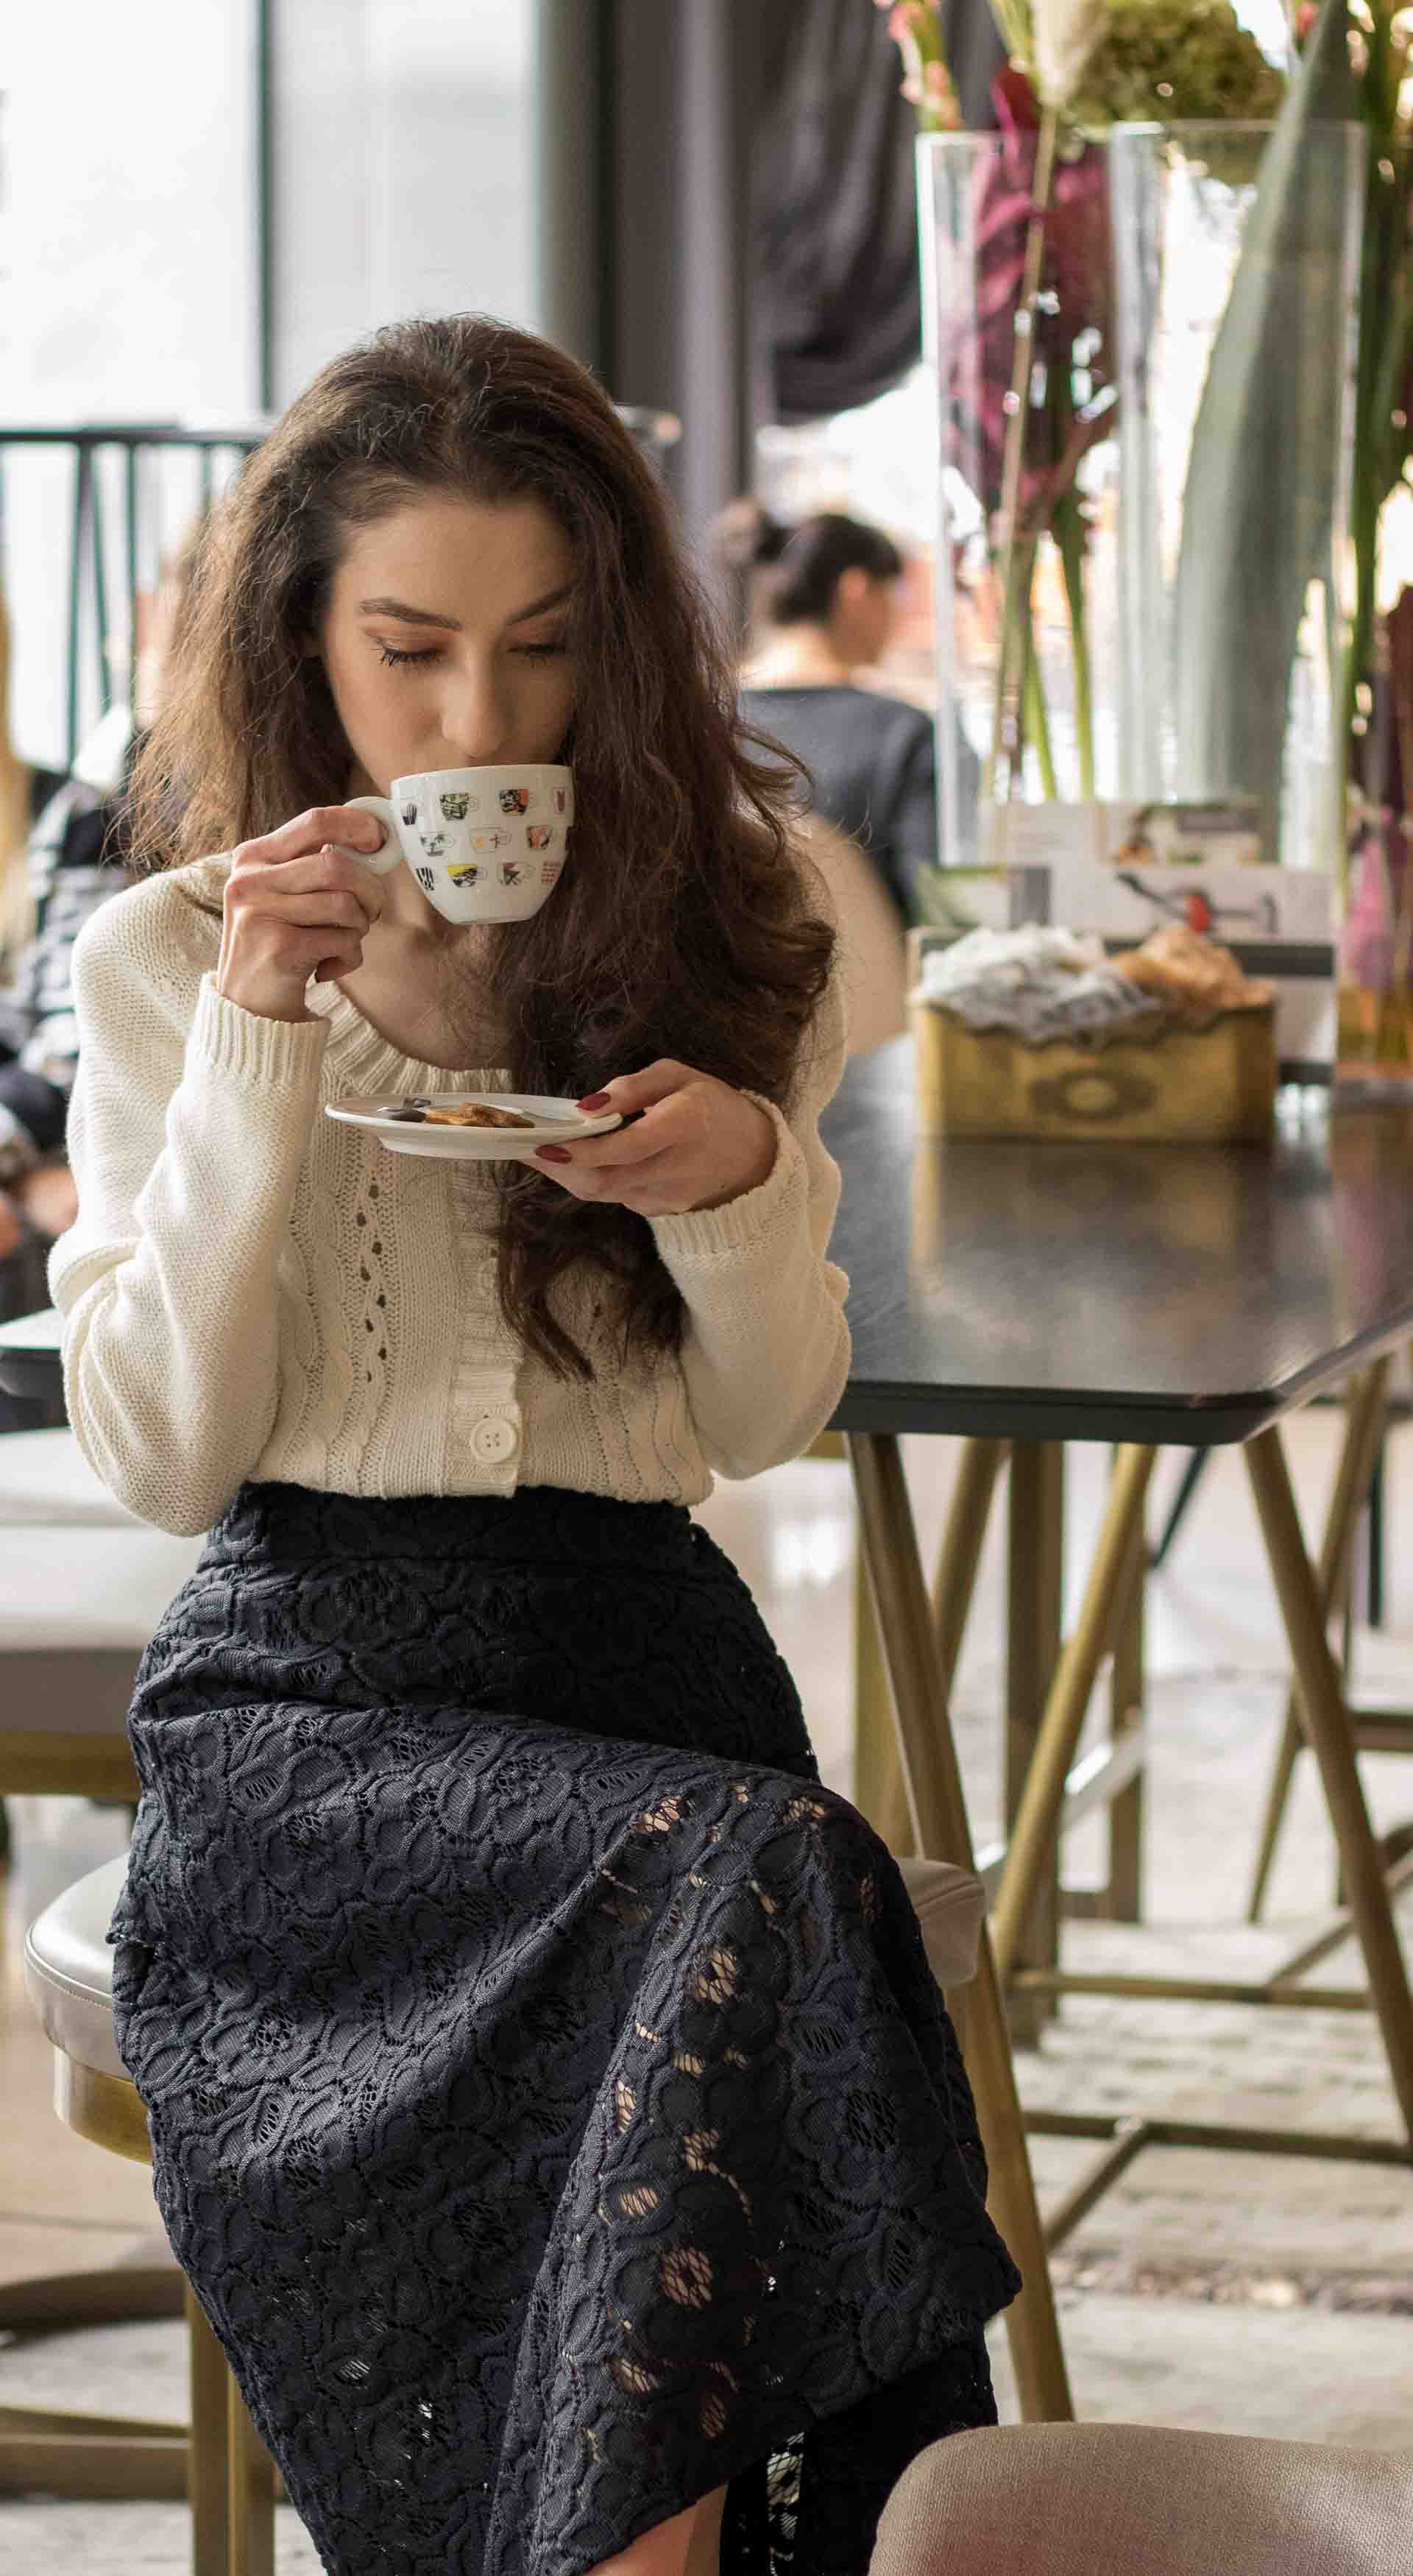 Beautiful Slovenian Fashion Blogger Veronika Lipar of Brunette from Wall dressed in white Mango cardigan etude into black lace midi skirt, blue Gianvito Rossi pumps for fall Sunday brunch drinking coffee